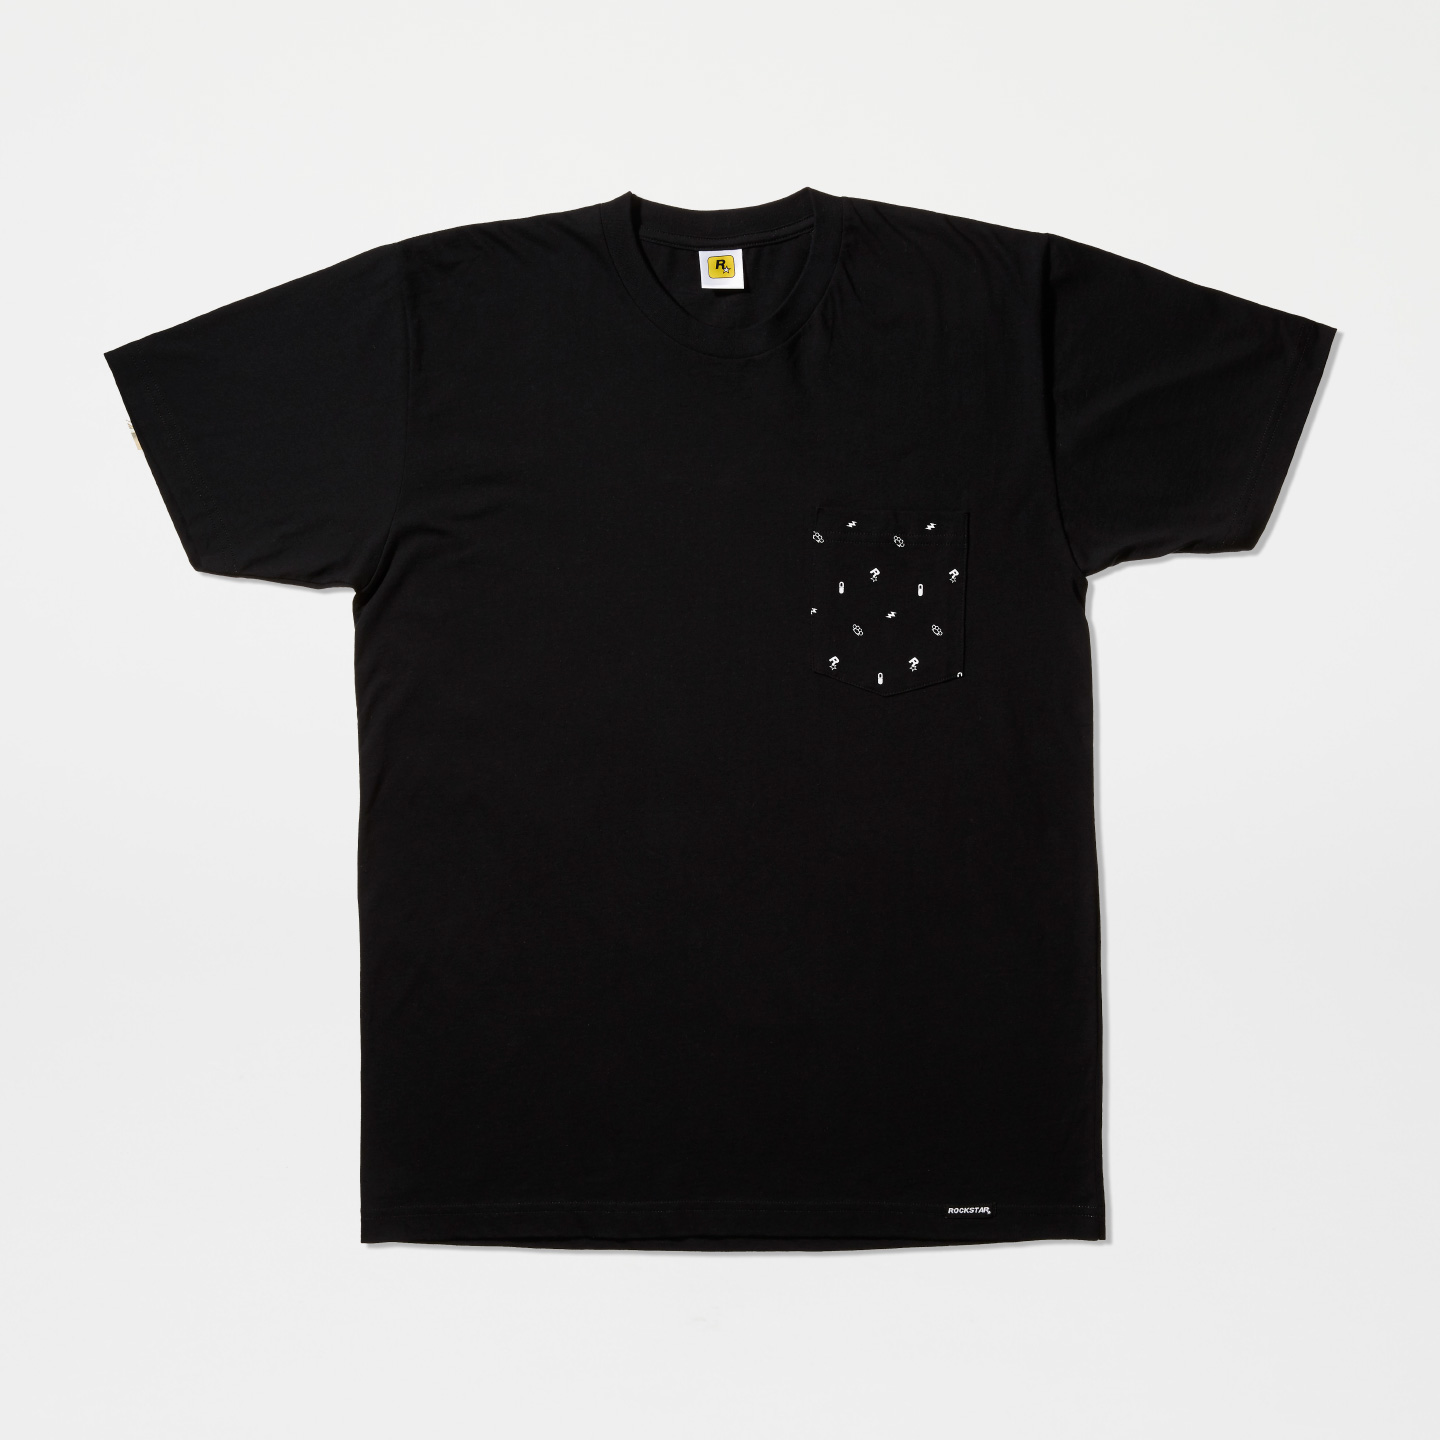 Knuckleduster Pocket Tee